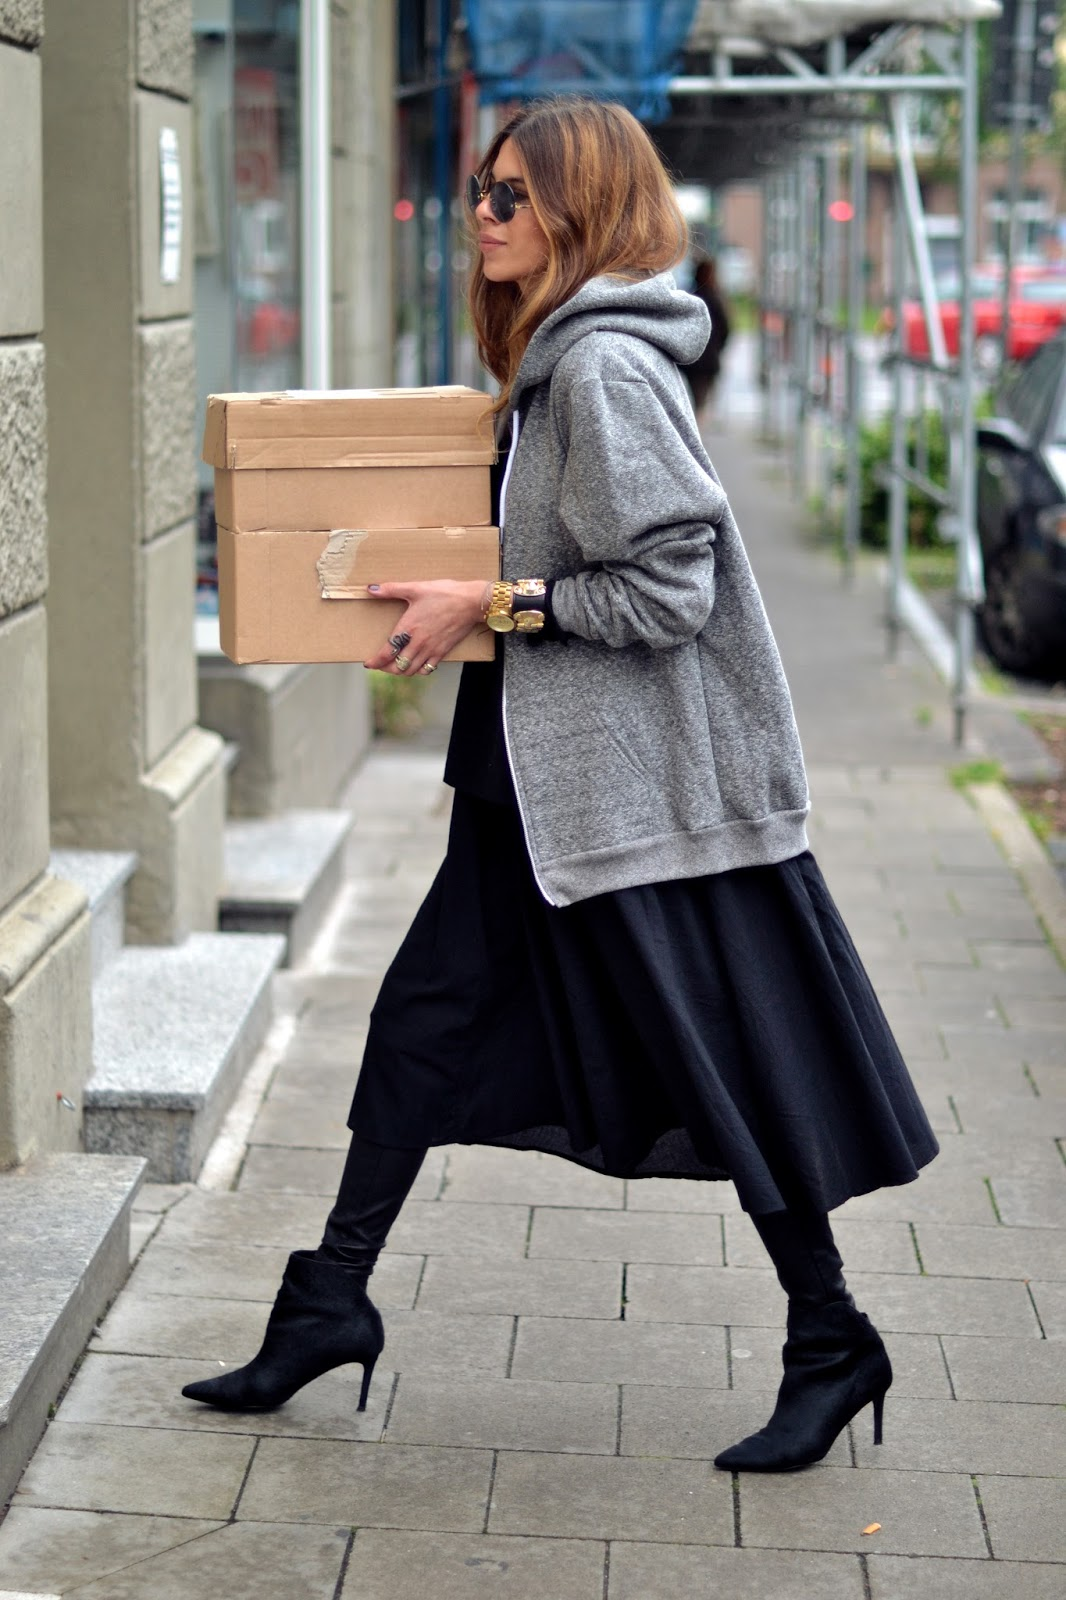 hoodies-for-women-street-style-26